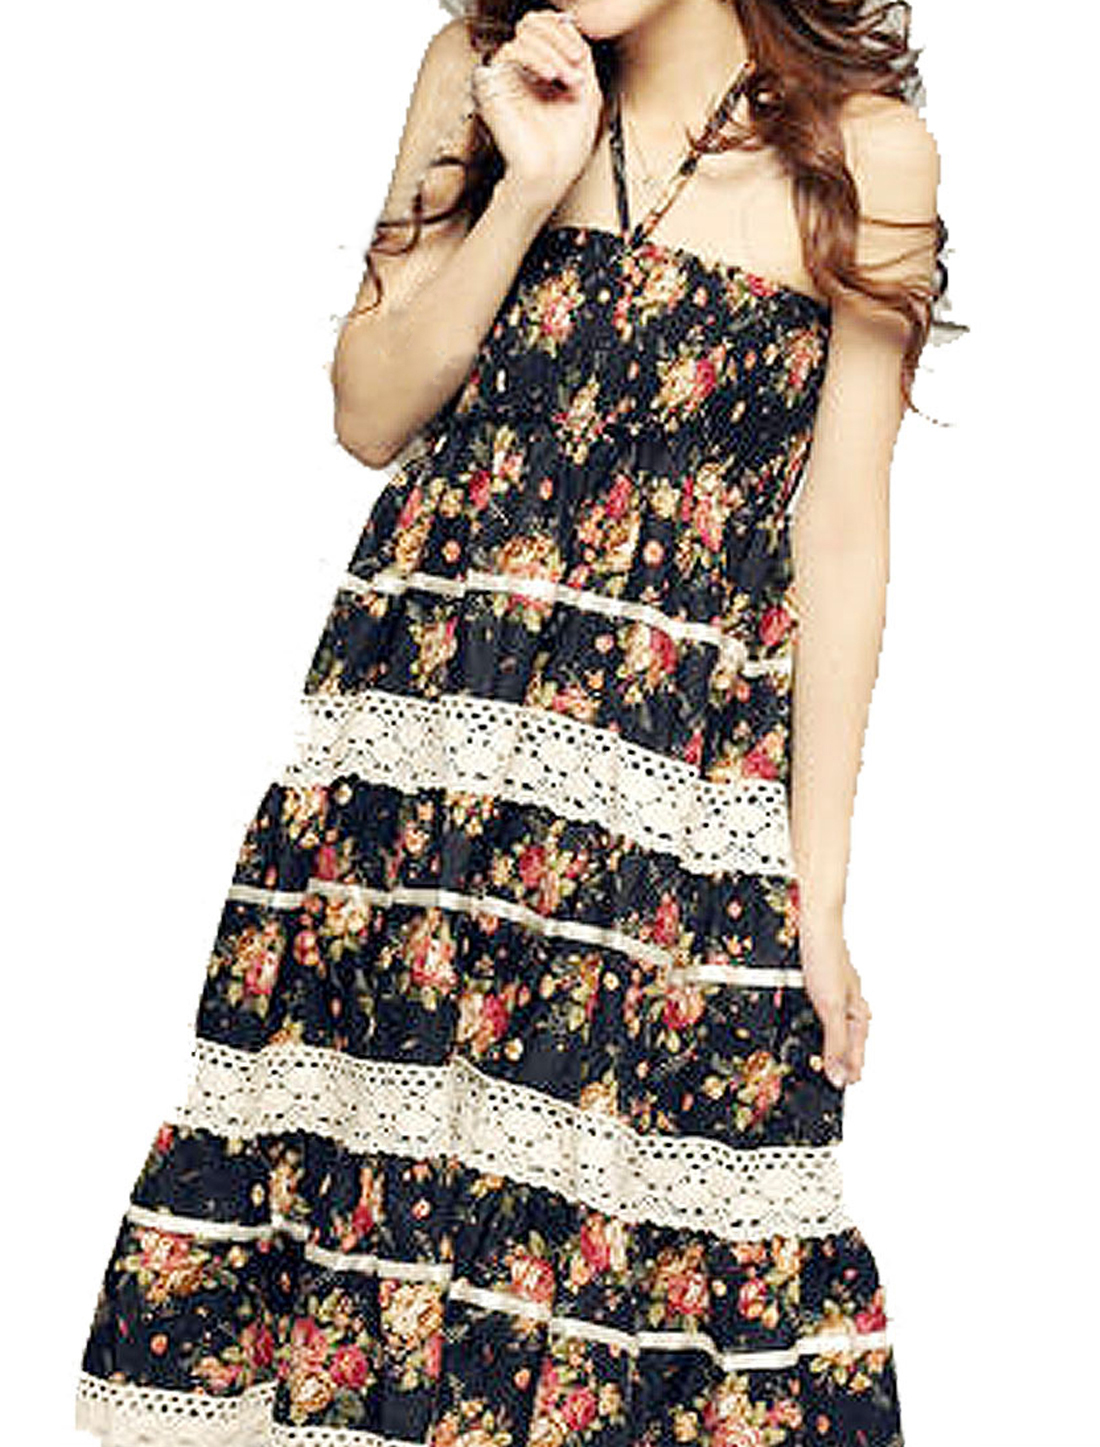 Women Floral Print Lace Trim Knee Length Halter Neck Dress Black XS